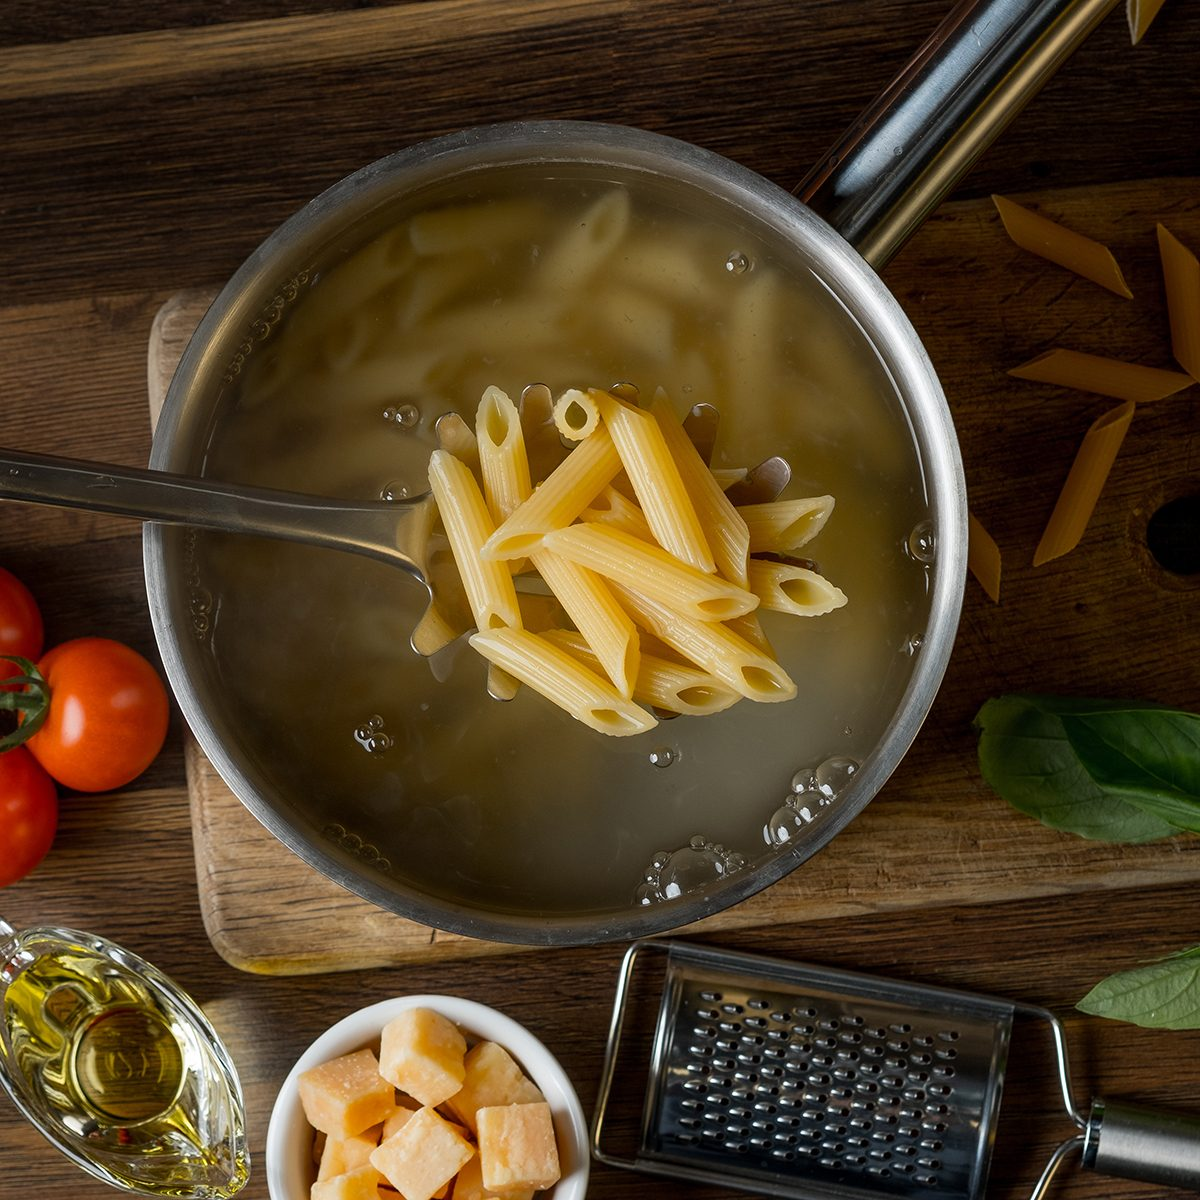 Home cooking pasta in a saucepan with water and cooking ingredients with a cutting board on the background of a wooden table,